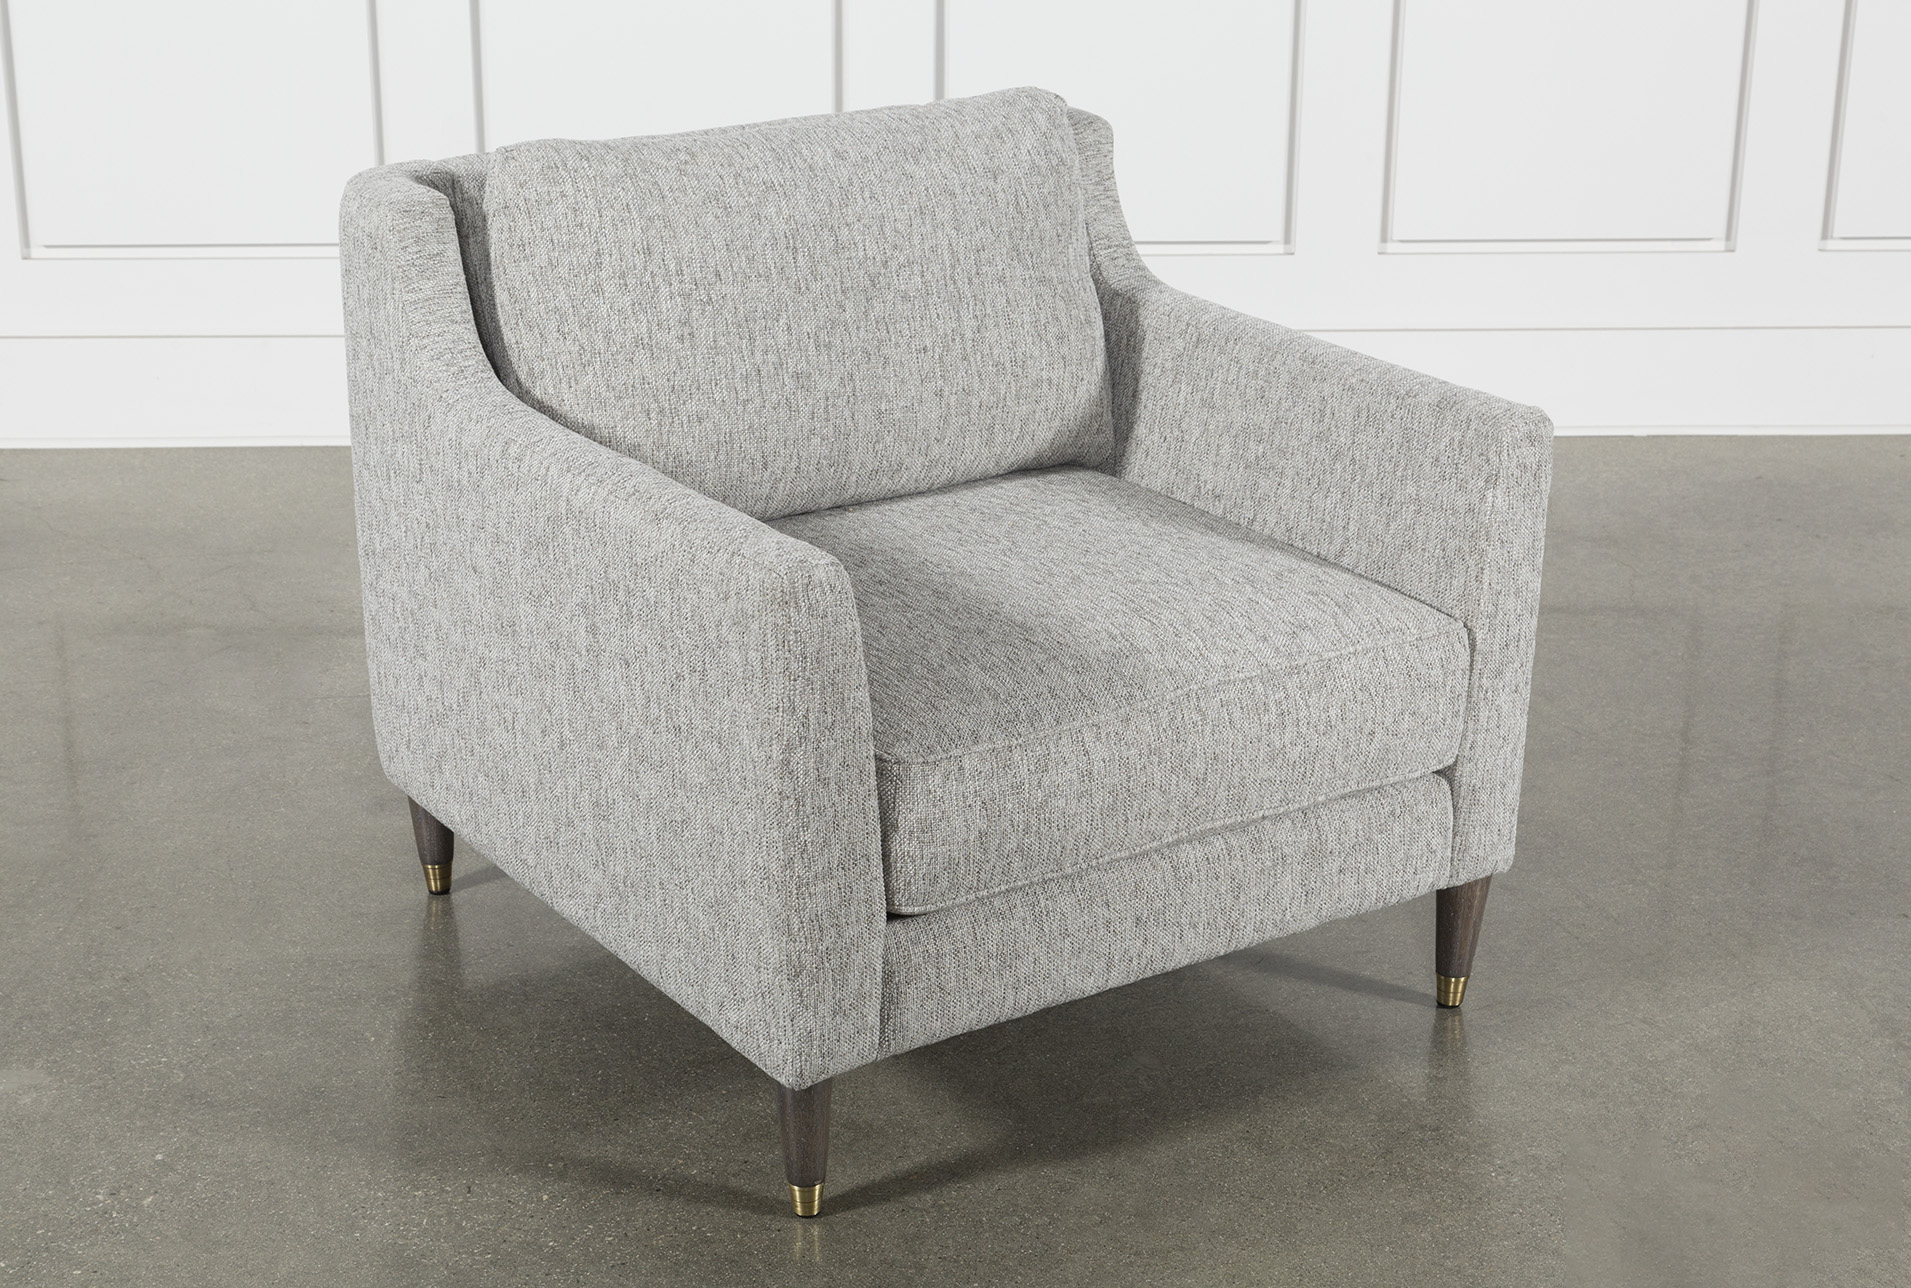 Featured Image of Ames Arm Sofa Chairs By Nate Berkus And Jeremiah Brent